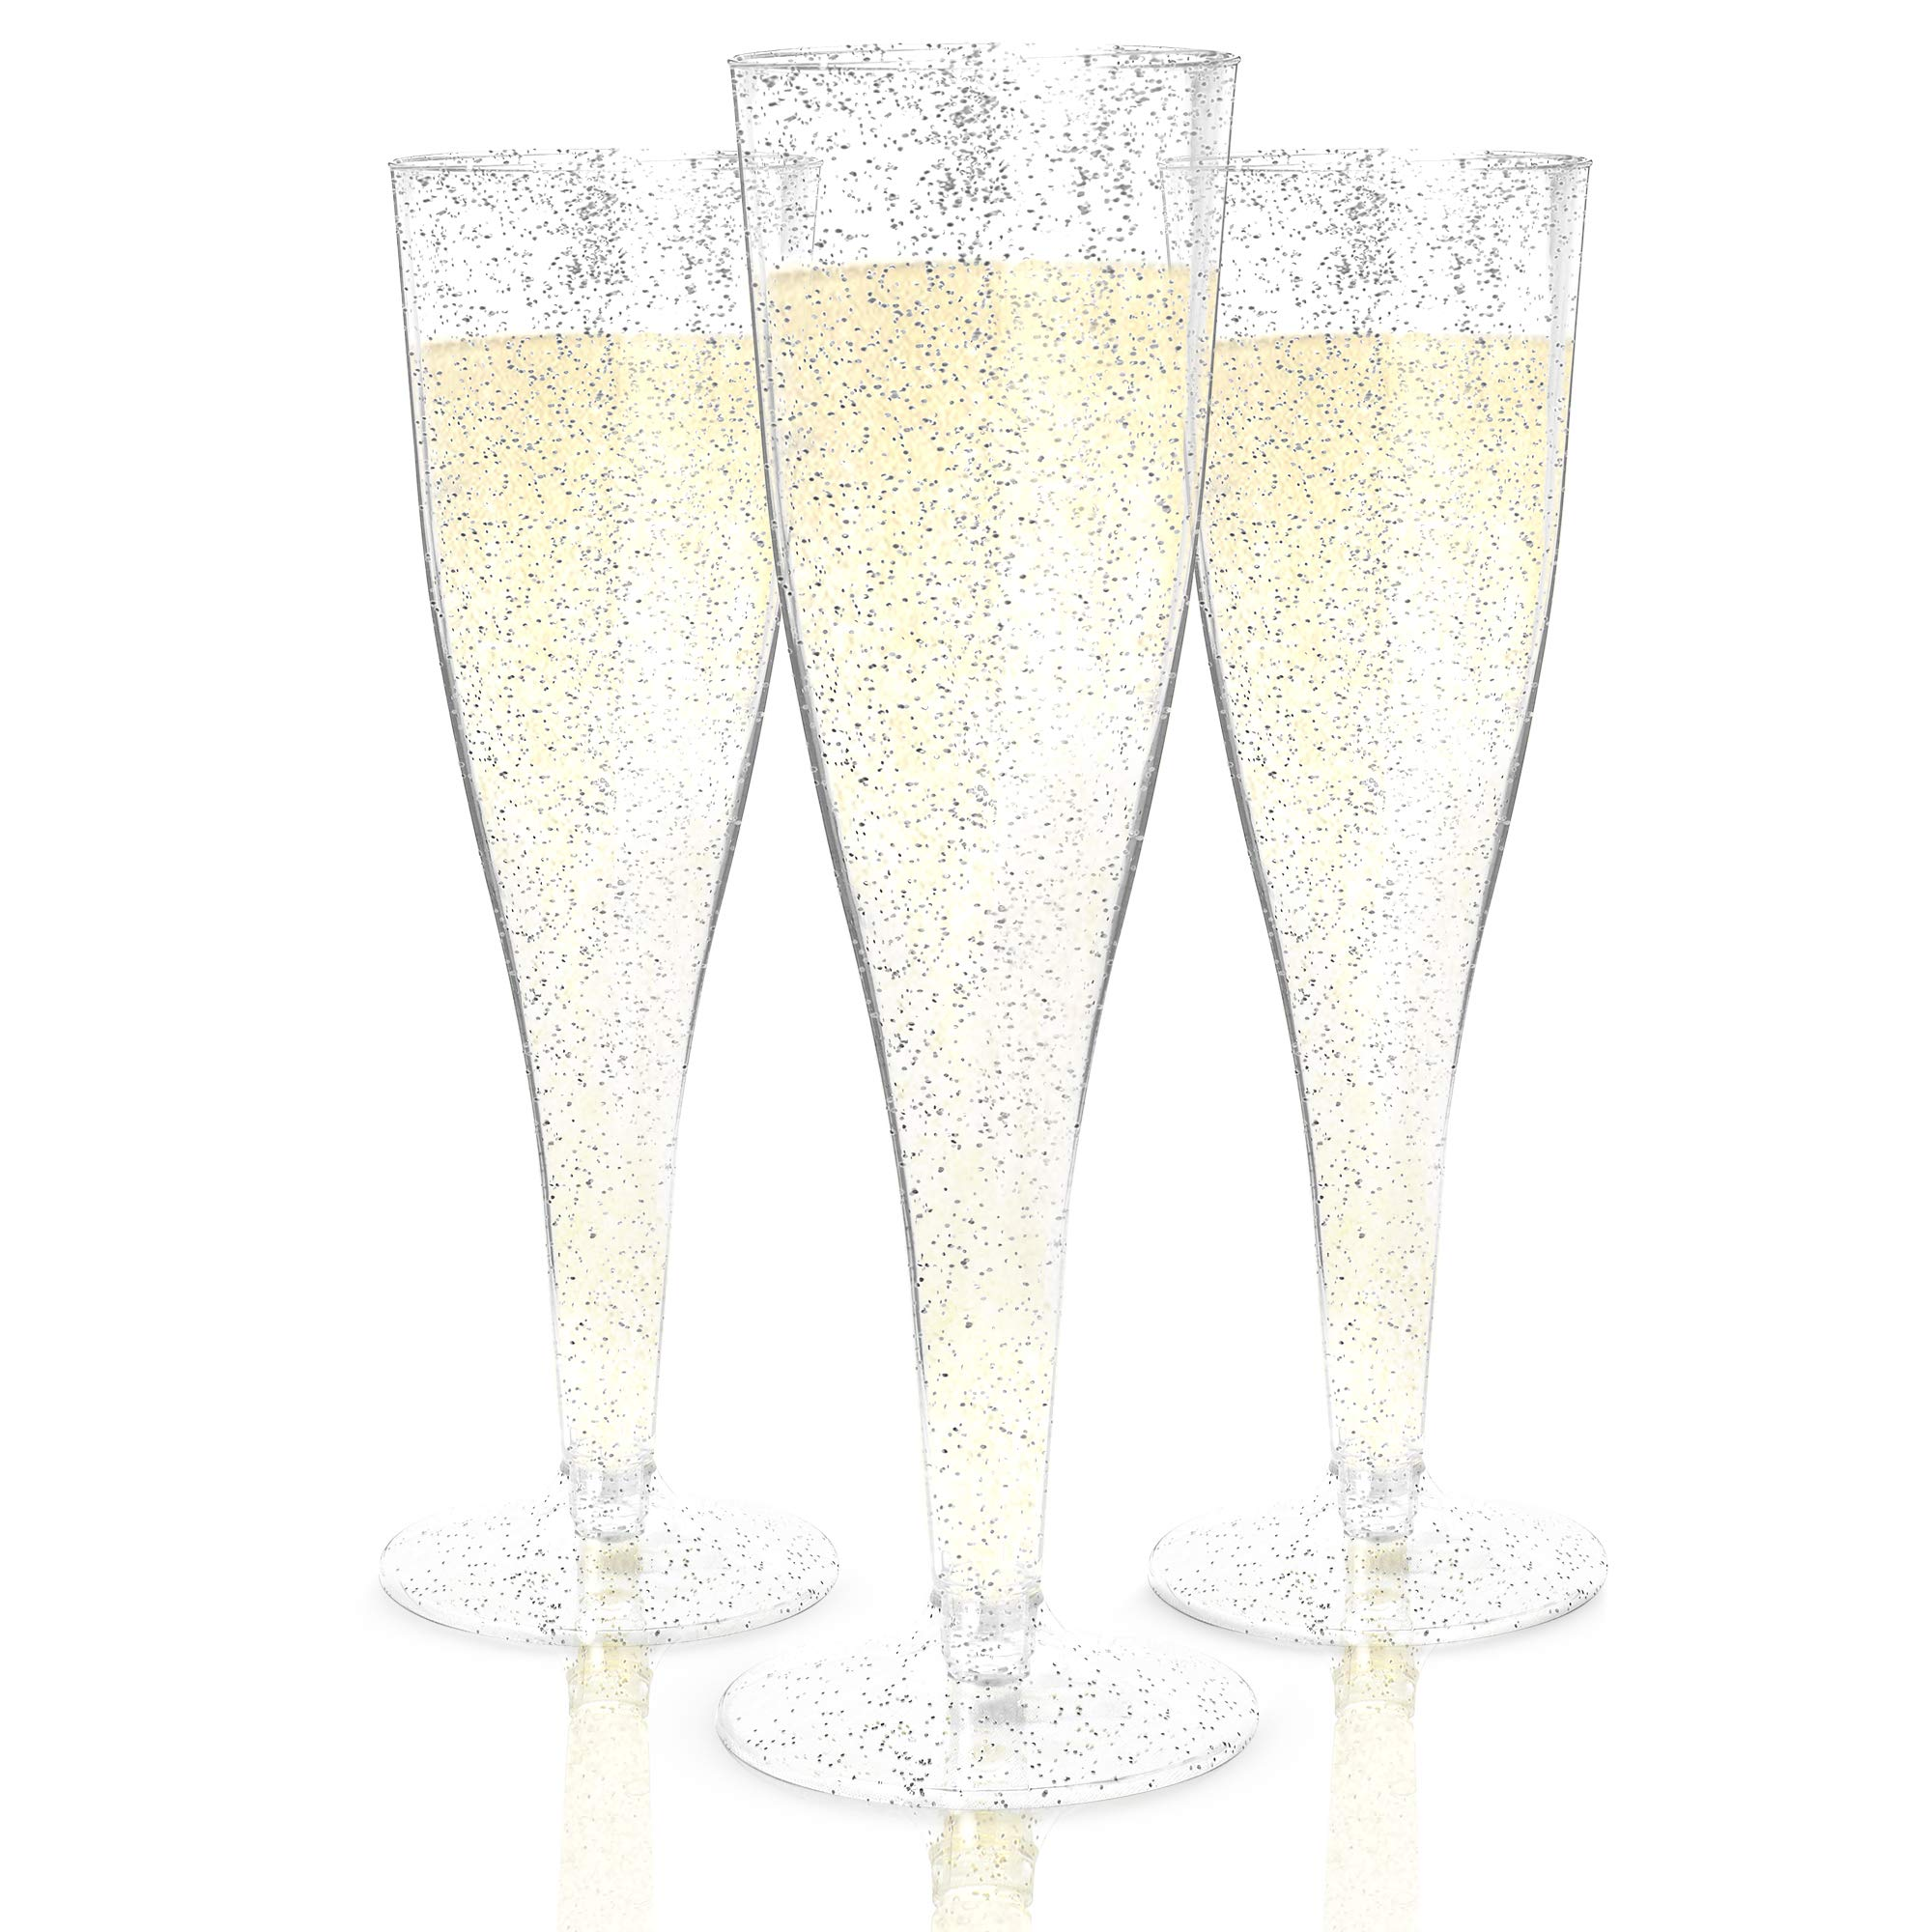 Plastic Champagne Flutes Disposable - 100 Pack | Silver Glitter Plastic Champagne Glasses for Parties | Glitter Clear Plastic Cups | Plastic Toasting Glasses | Mimosa Glasses | Wedding Party Bulk Pack by Prestee